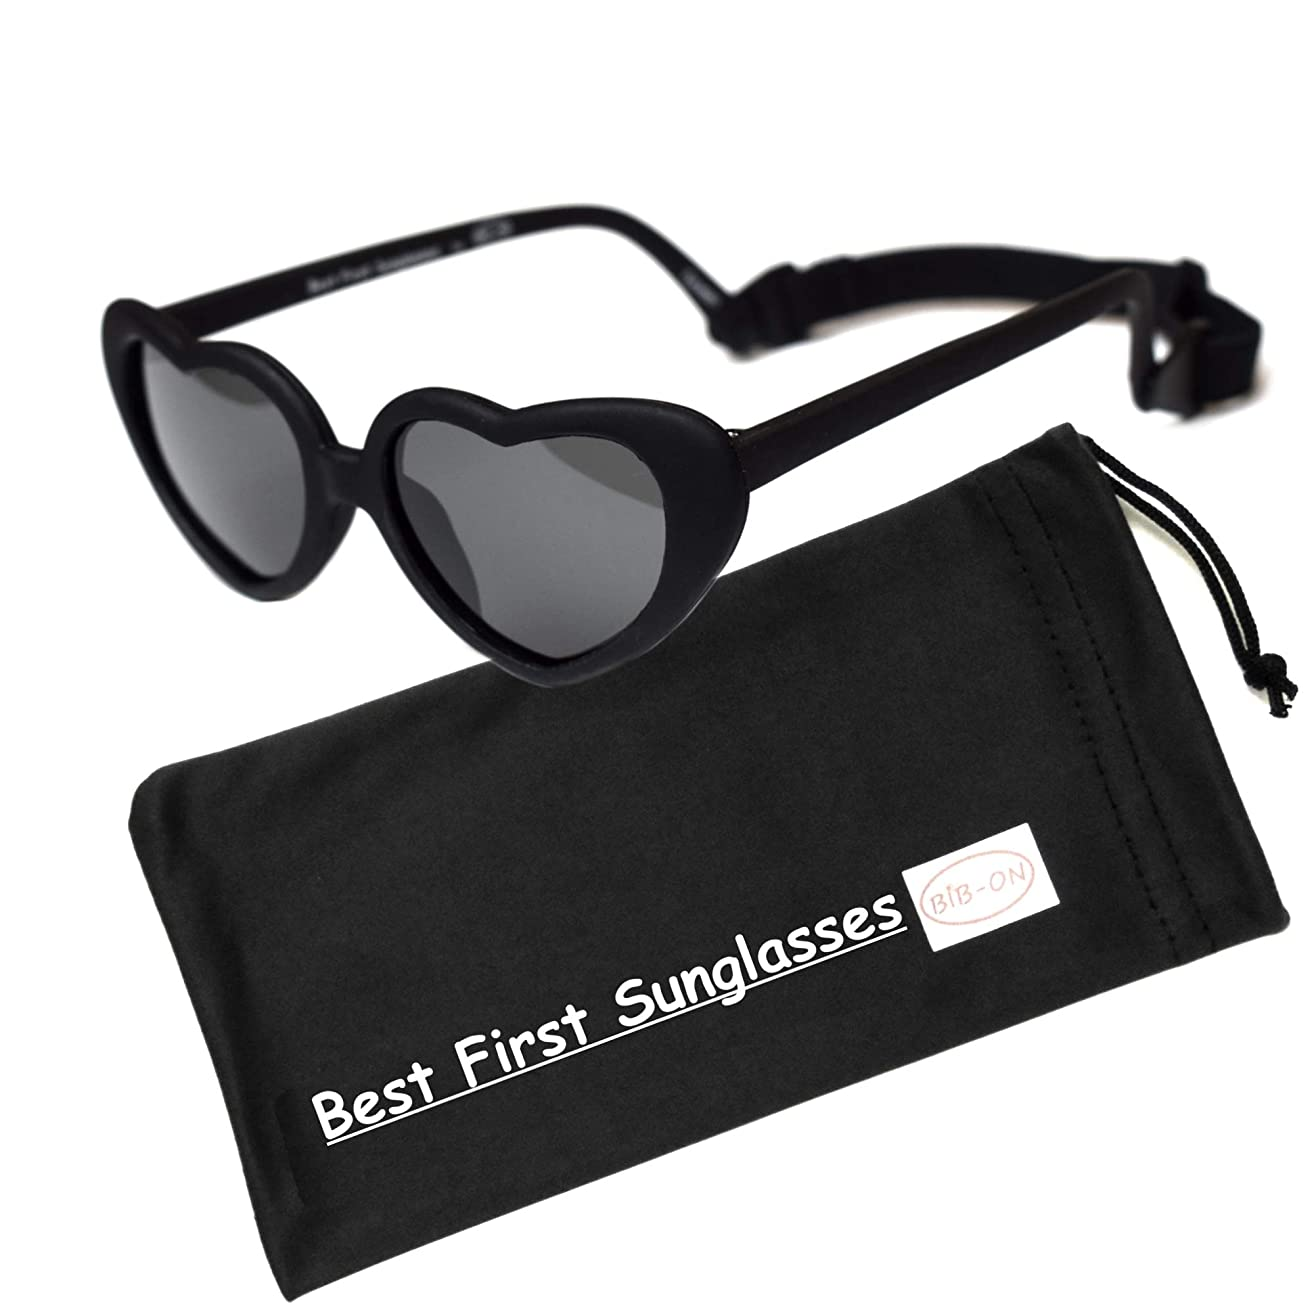 Sweetheart- Best First Sunglasses for Infant, Baby, Toddler. 100% UV Protection. Many Colors and Sizes.